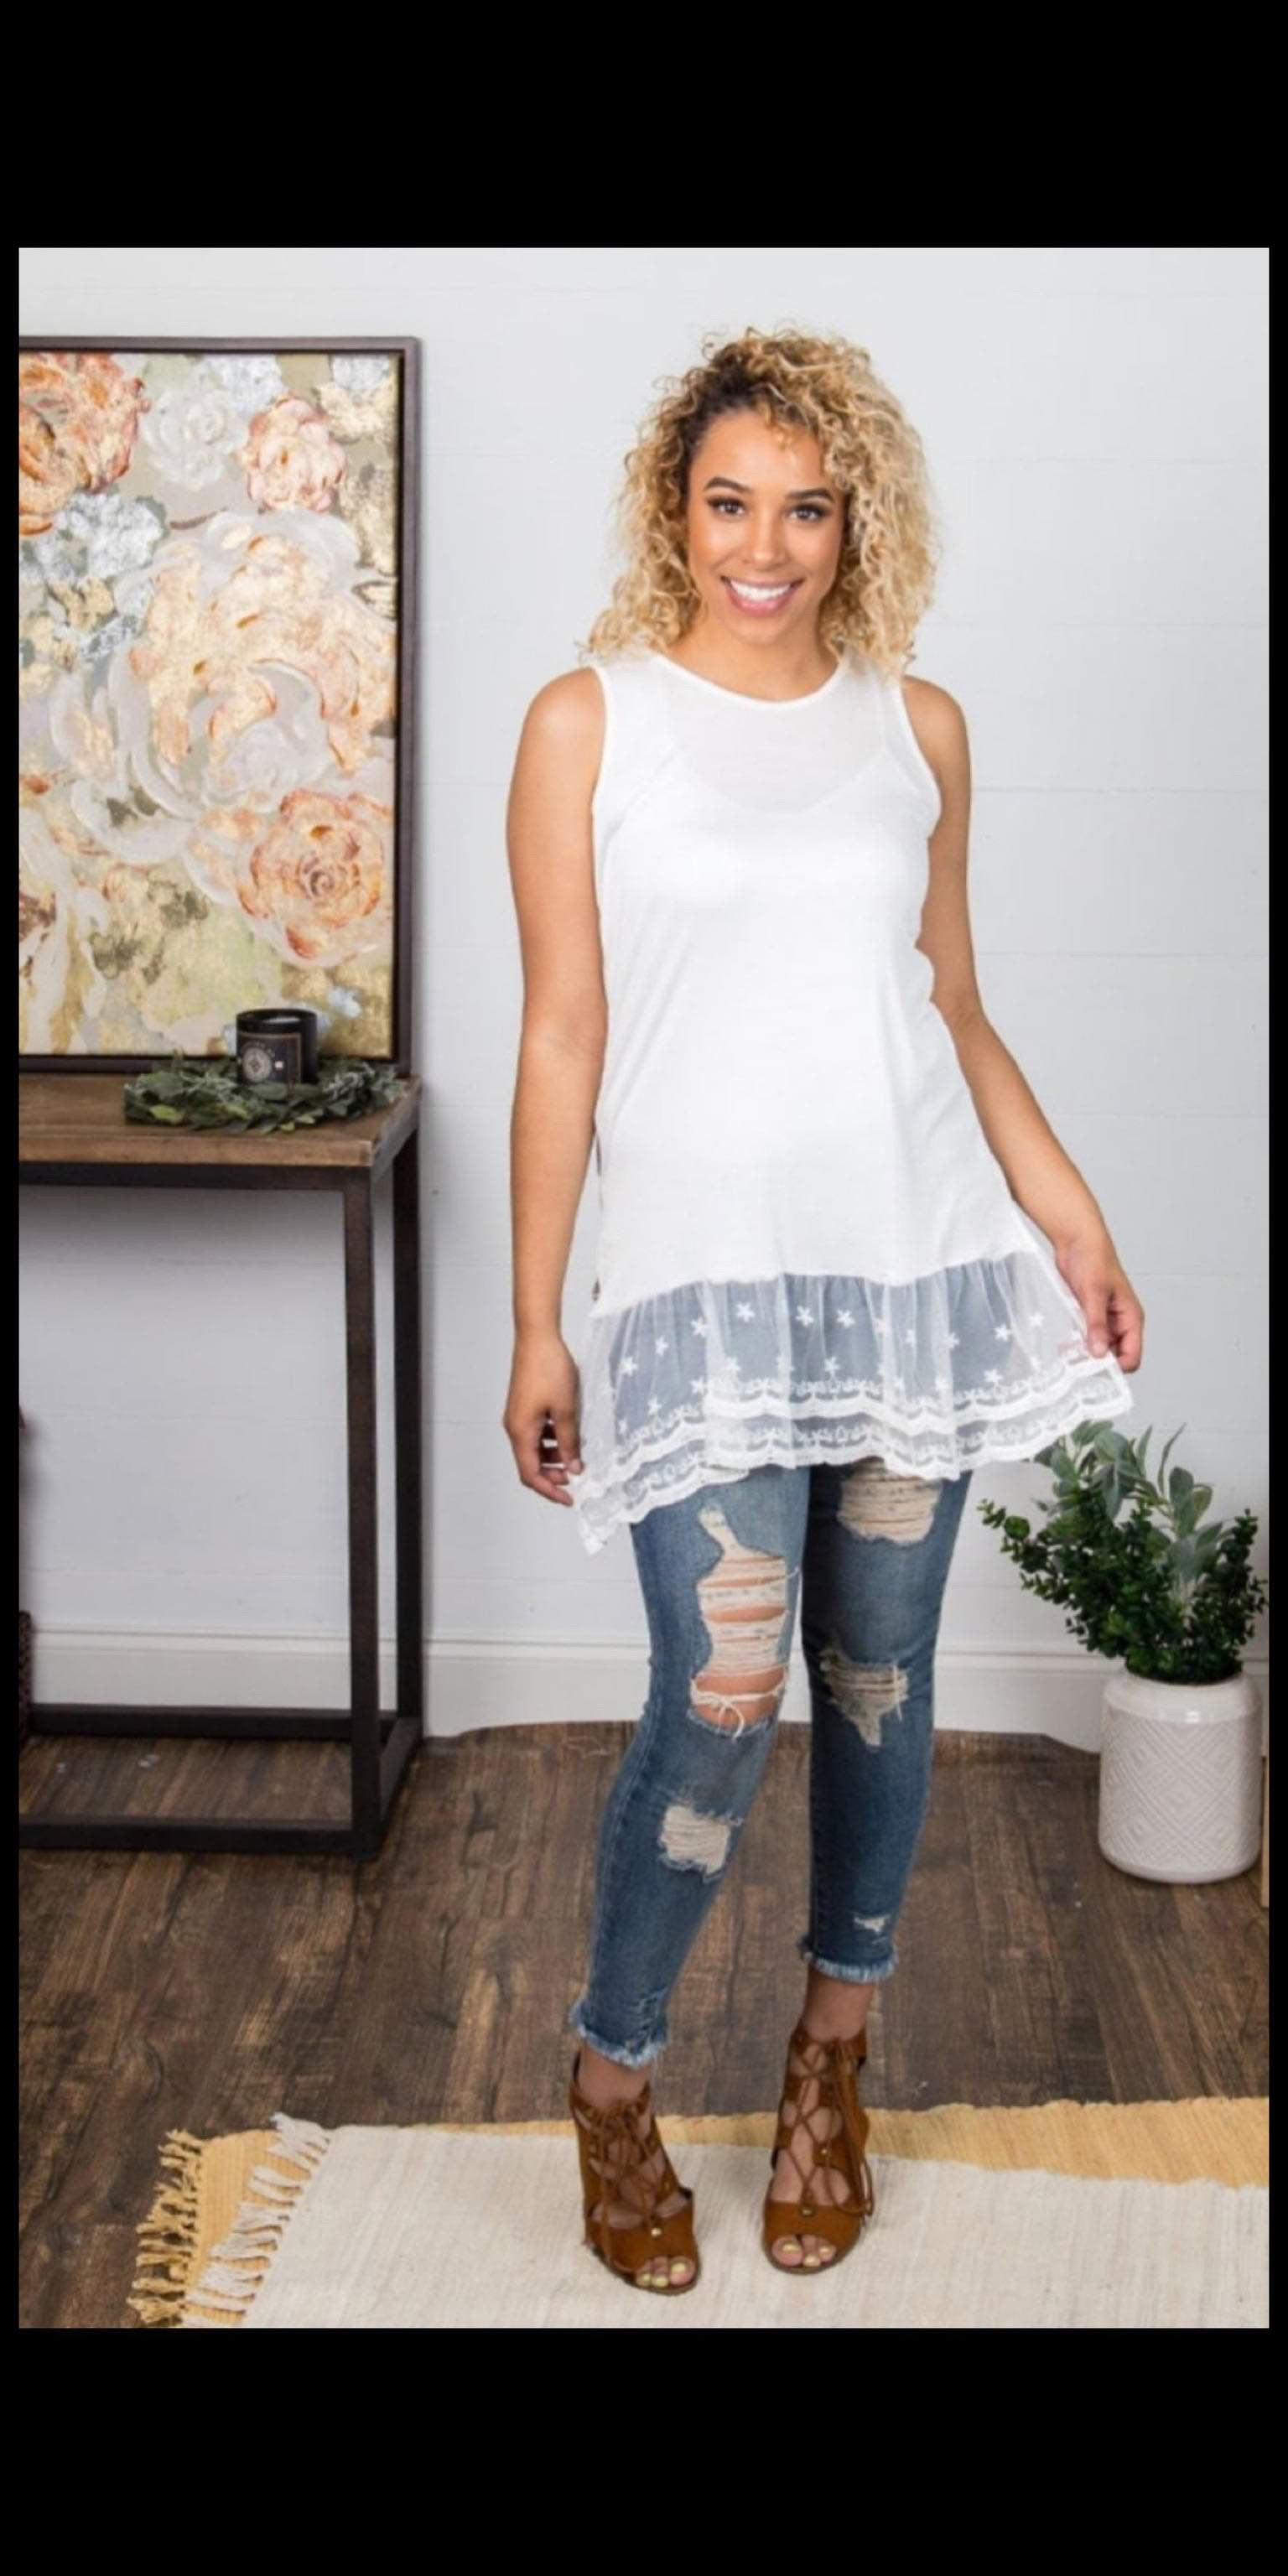 Lost in Lace Tank Top - Also in Plus Size